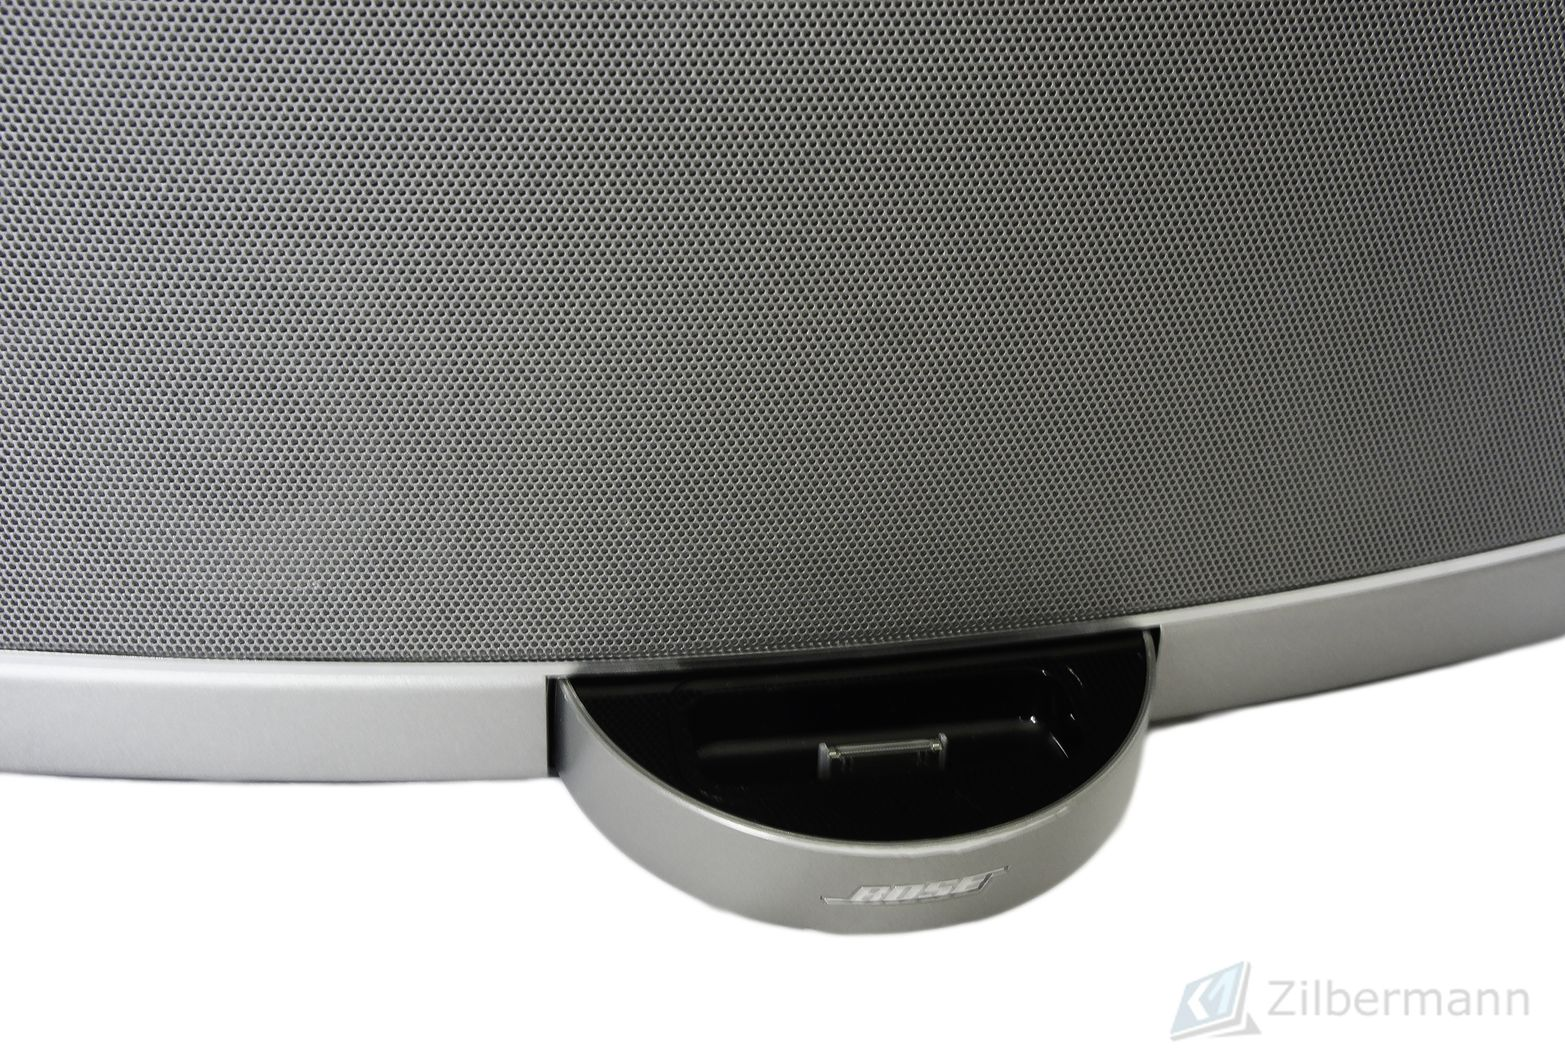 Bose_SoundDock_Portable_Digital_Music_System_09